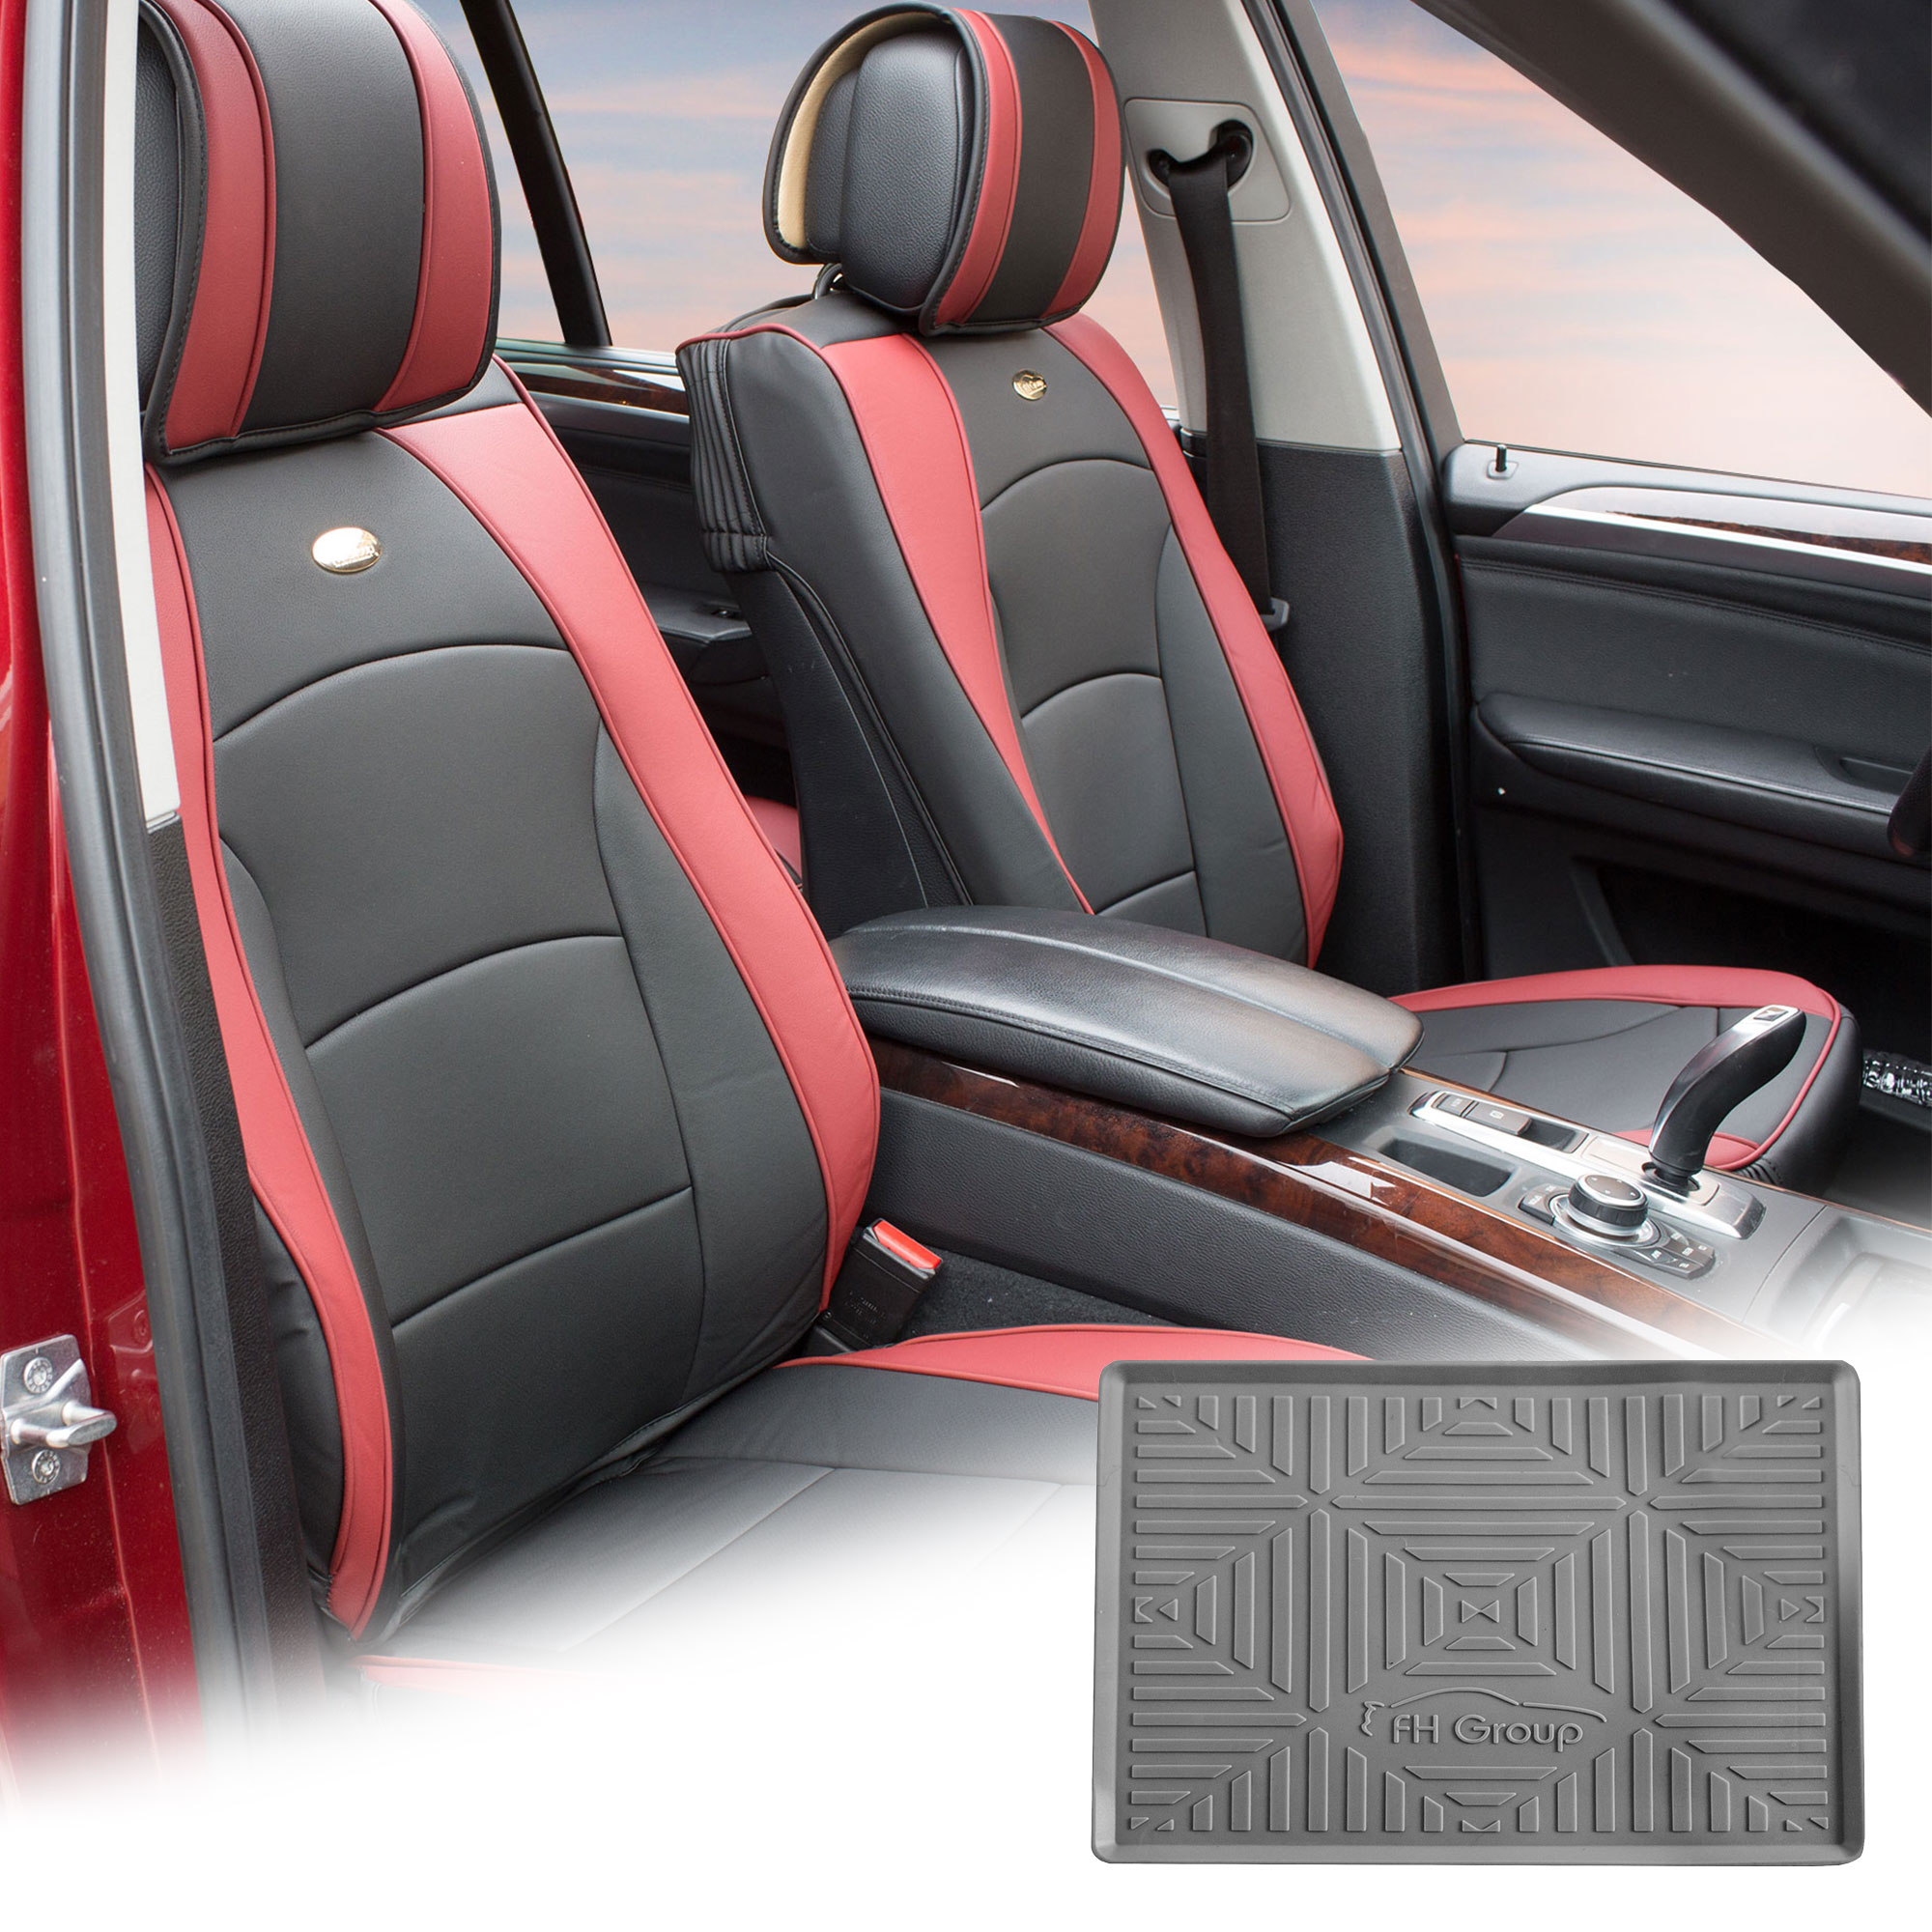 FH Group Burgundy Black PU Leather Front Bucket Seat Cushion Covers for Auto Car SUV Truck Van with Gray Dash Mat Combo